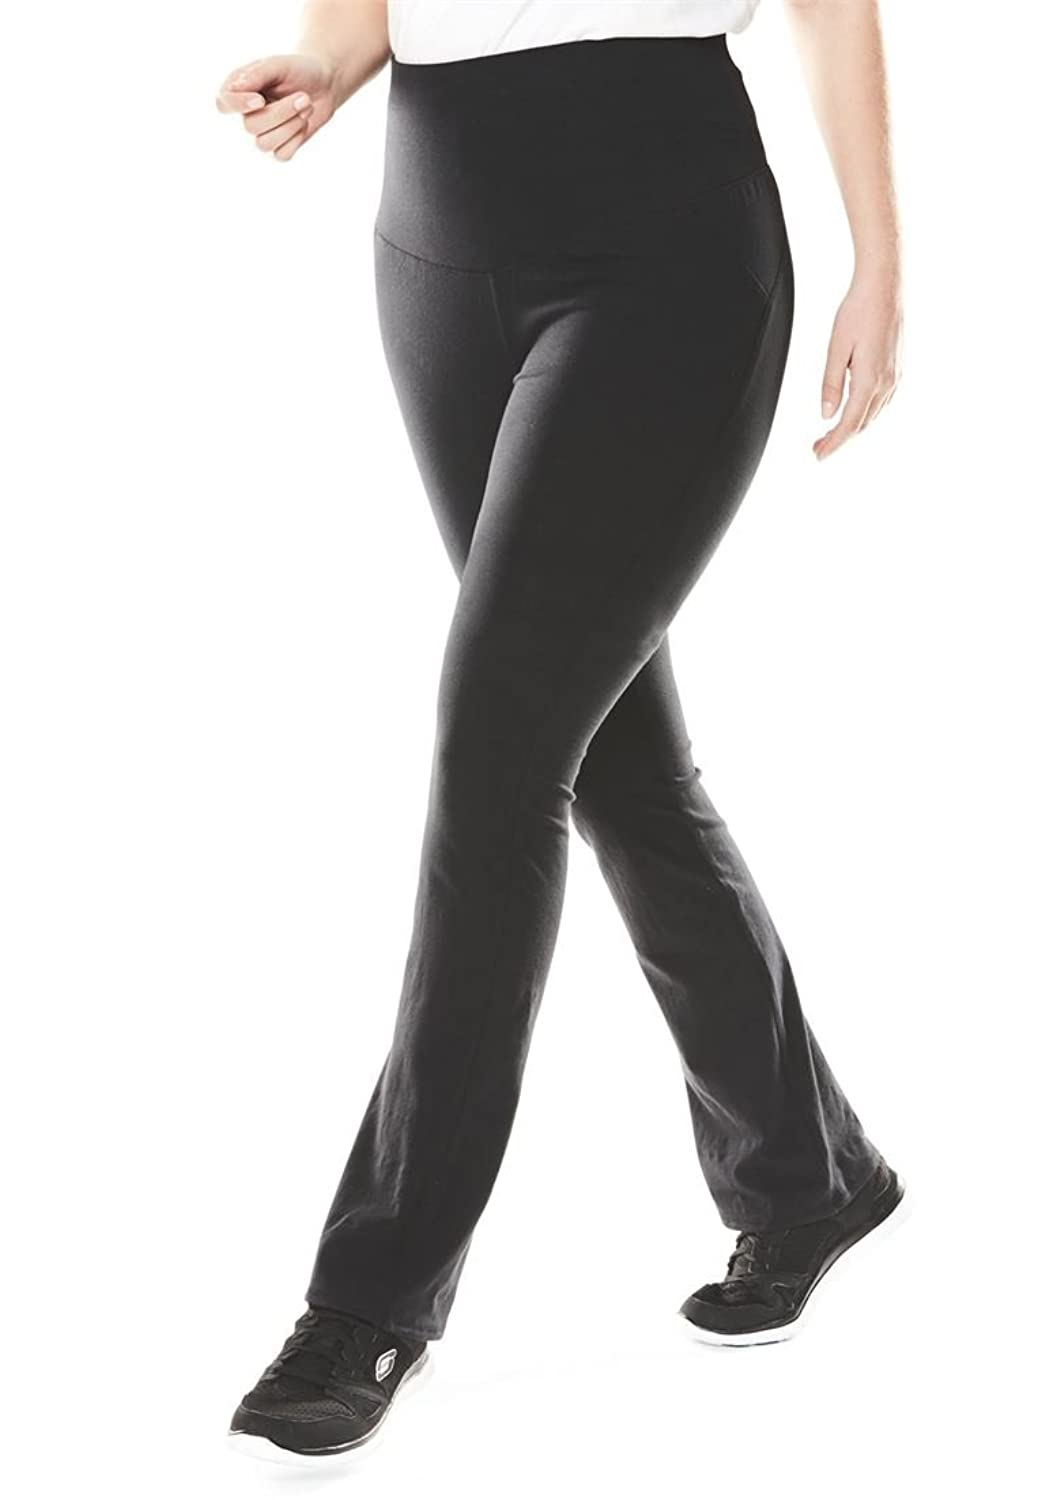 Women's Plus Size Smooth Waist Tummy Control Petite Stretch Knit Bootcut Pants